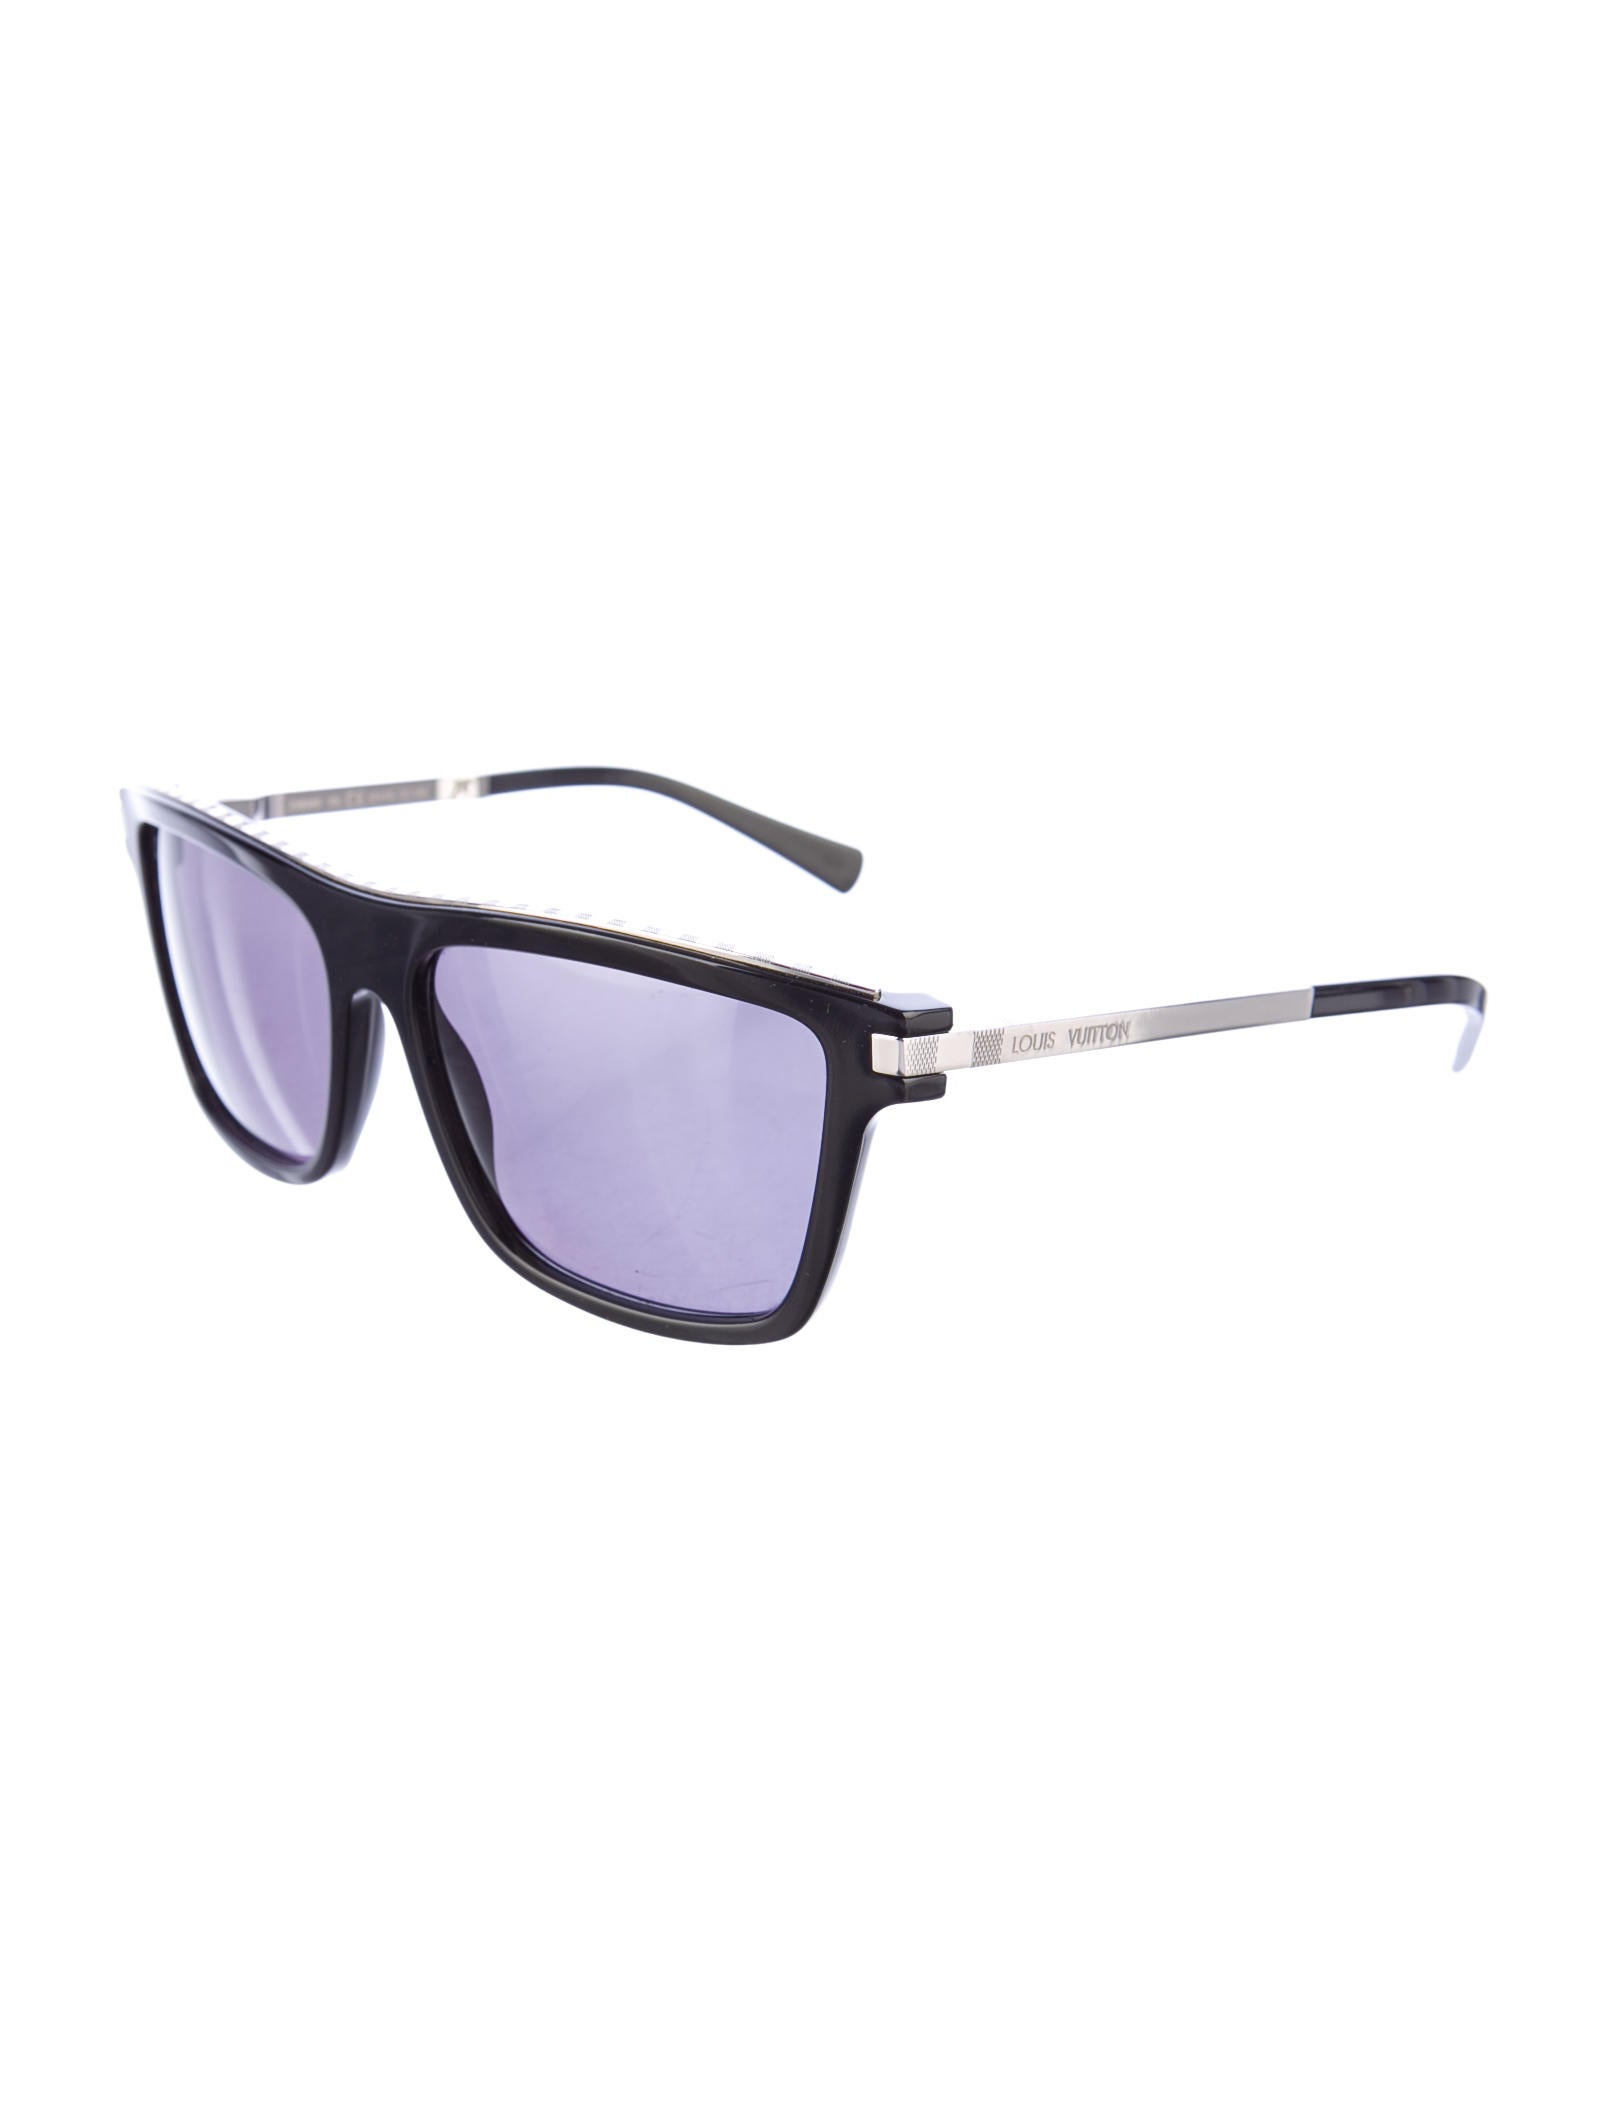 Louis Vuitton Perception Sunglasses  louis vuitton perception sunglasses accessories lou41302 the